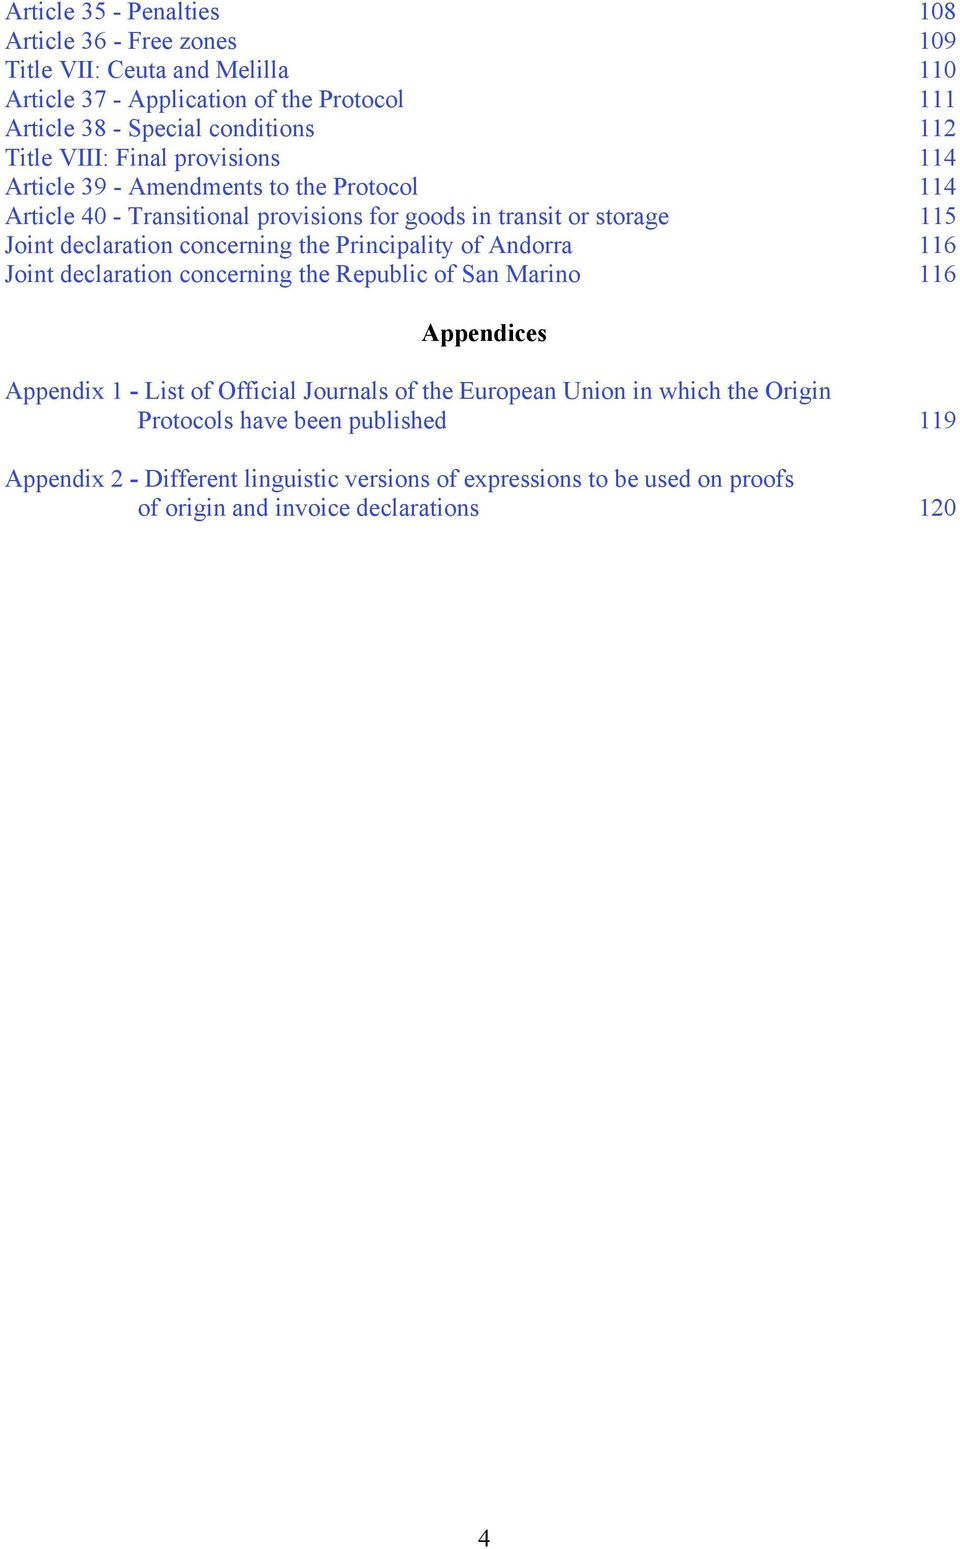 concerning the Principality of Andorra 116 Joint declaration concerning the Republic of San Marino 116 Appendices Appendix 1 - List of Official Journals of the European